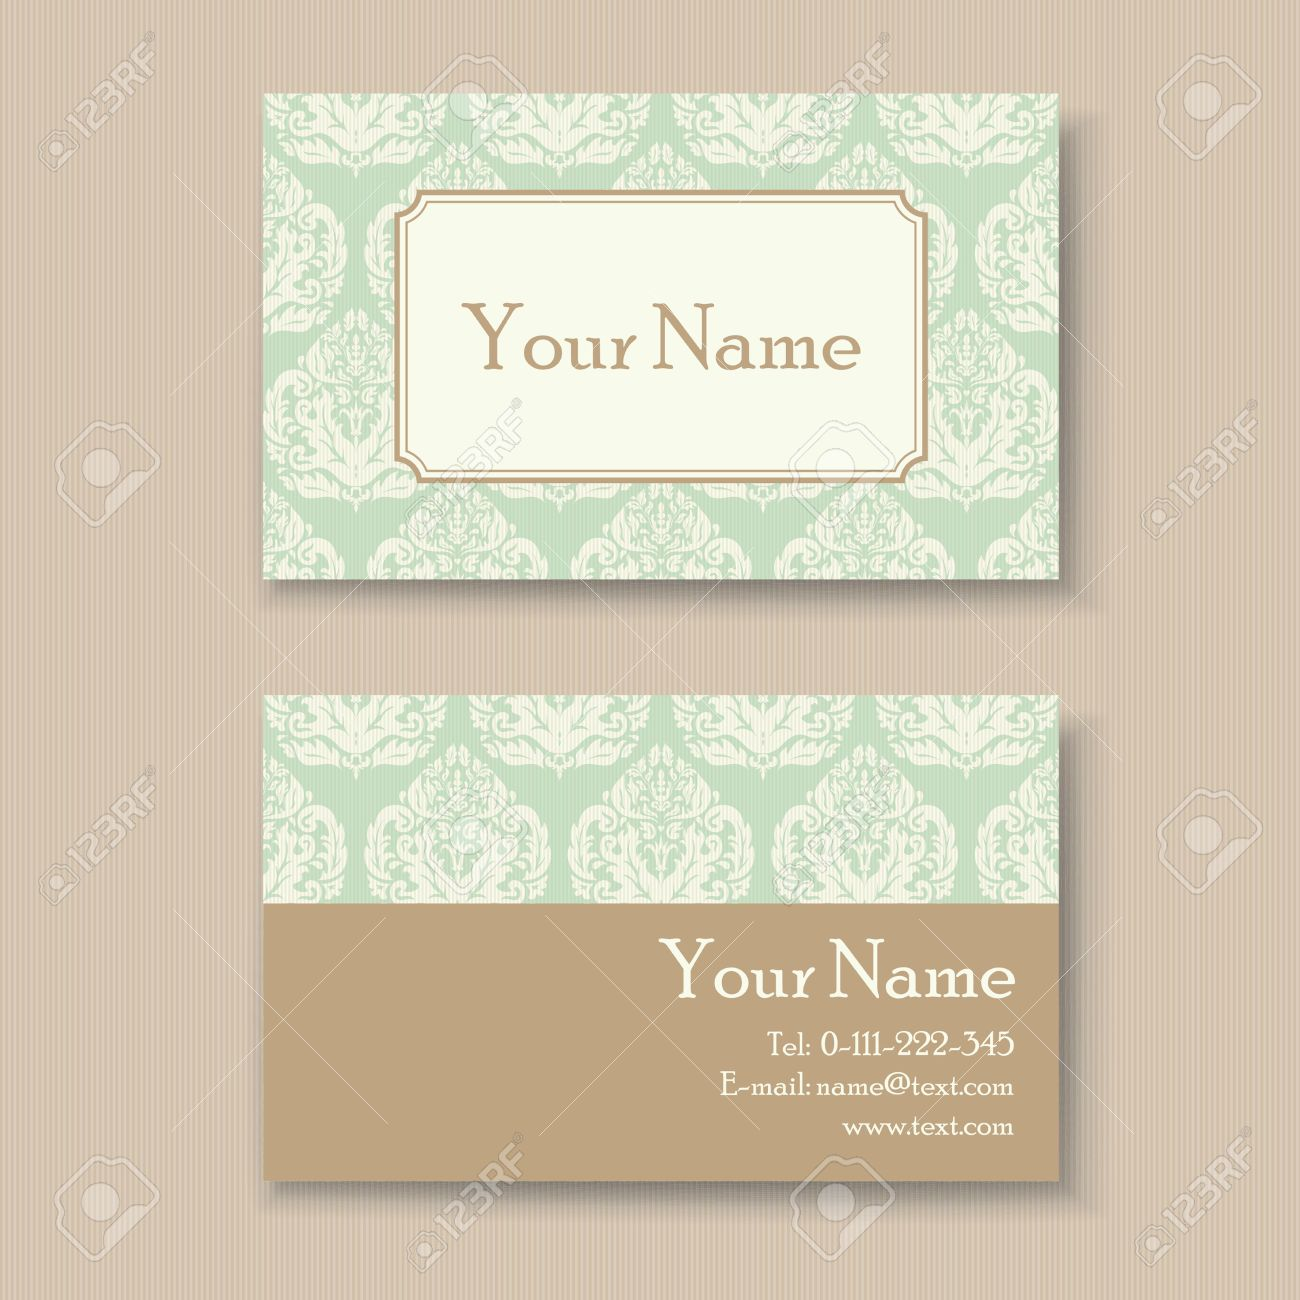 Stylish vintage business card template royalty free cliparts stylish vintage business card template stock vector 30519765 flashek Choice Image